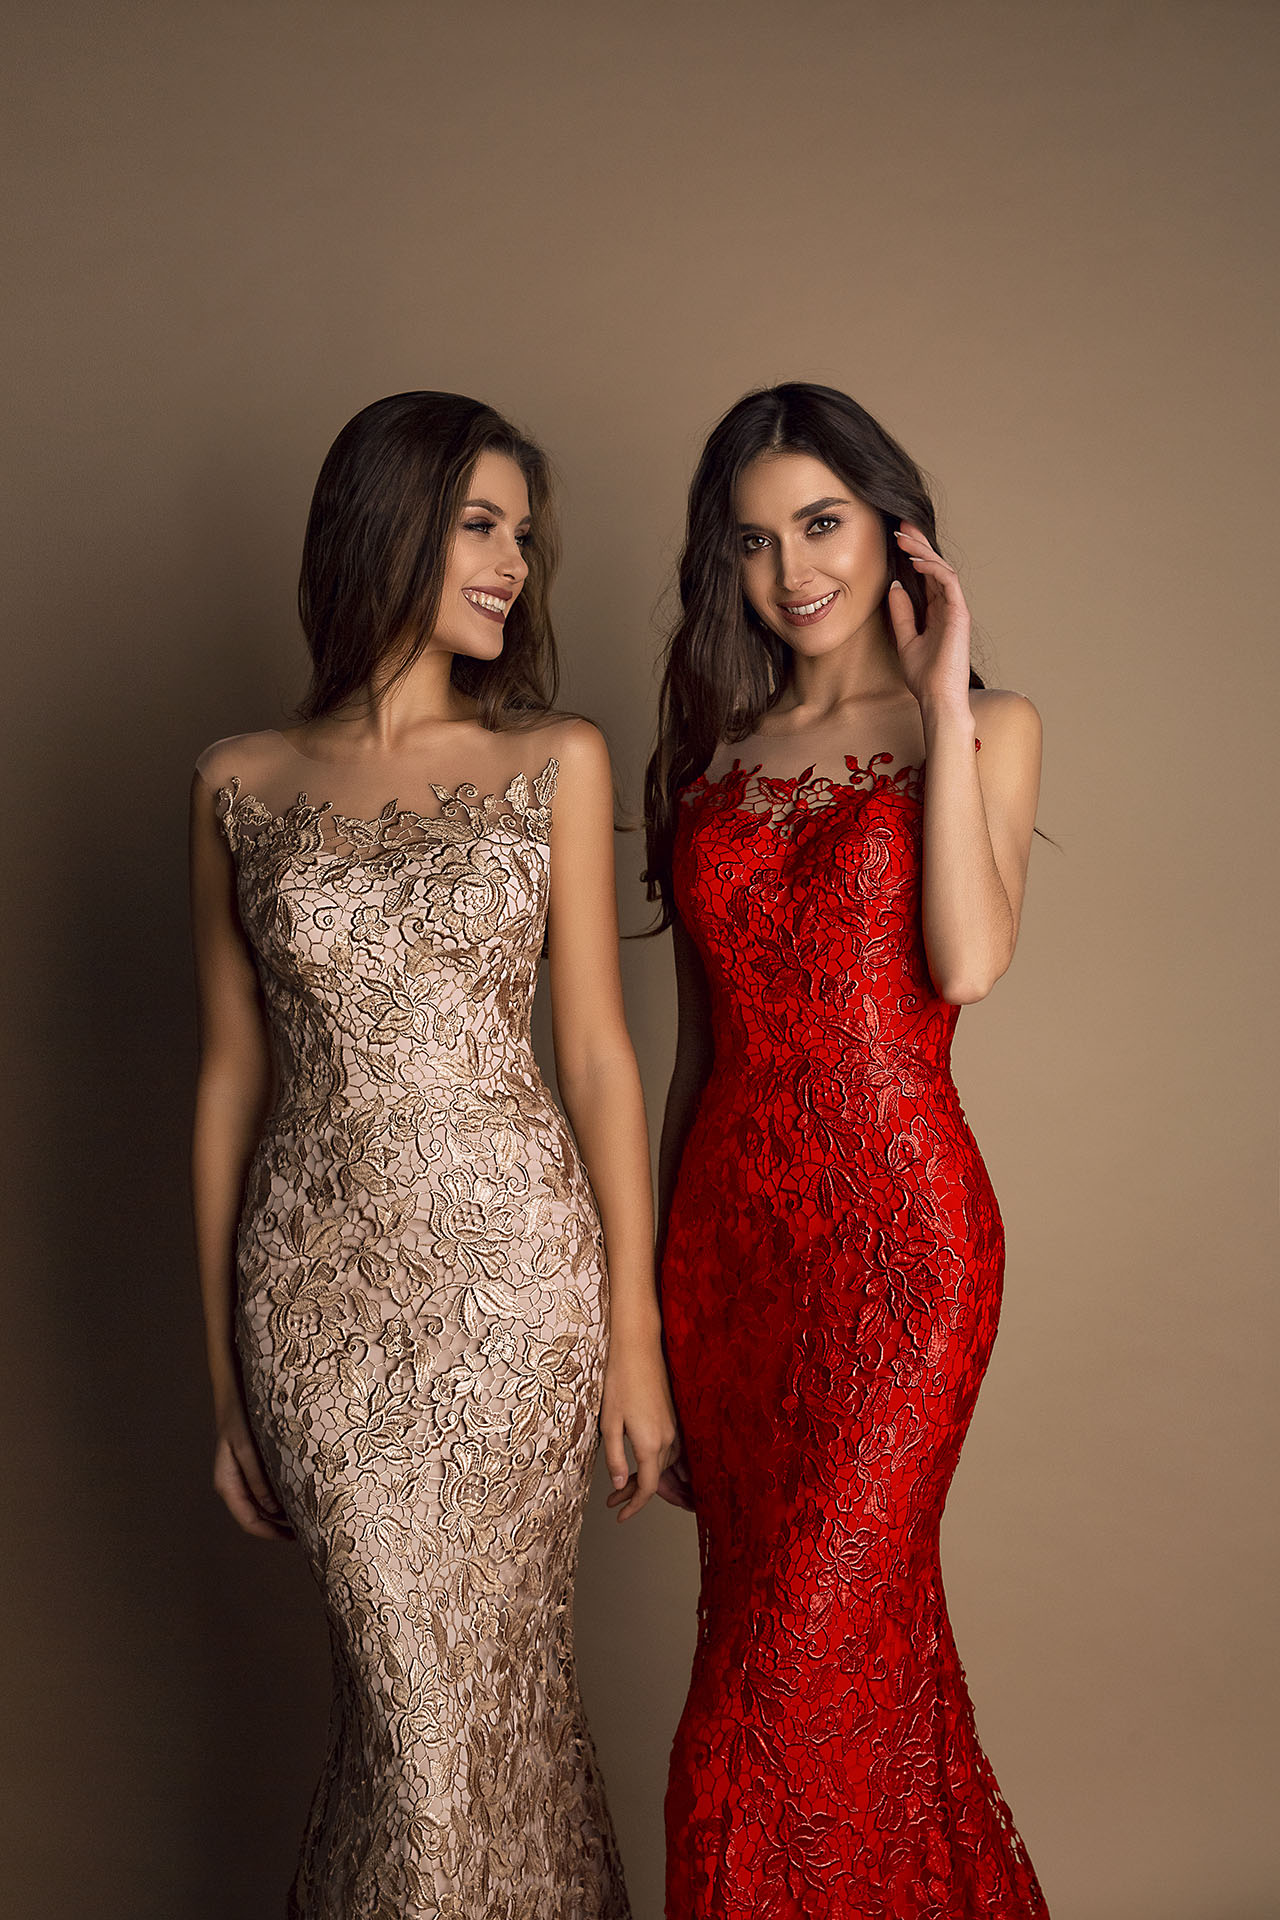 Evening Dresses 1603 Silhouette  Fitted  Color  Cappuccino  Red  Neckline  Sweetheart  Illusion  Sleeves  Sleeveless  Train  No train - foto 3